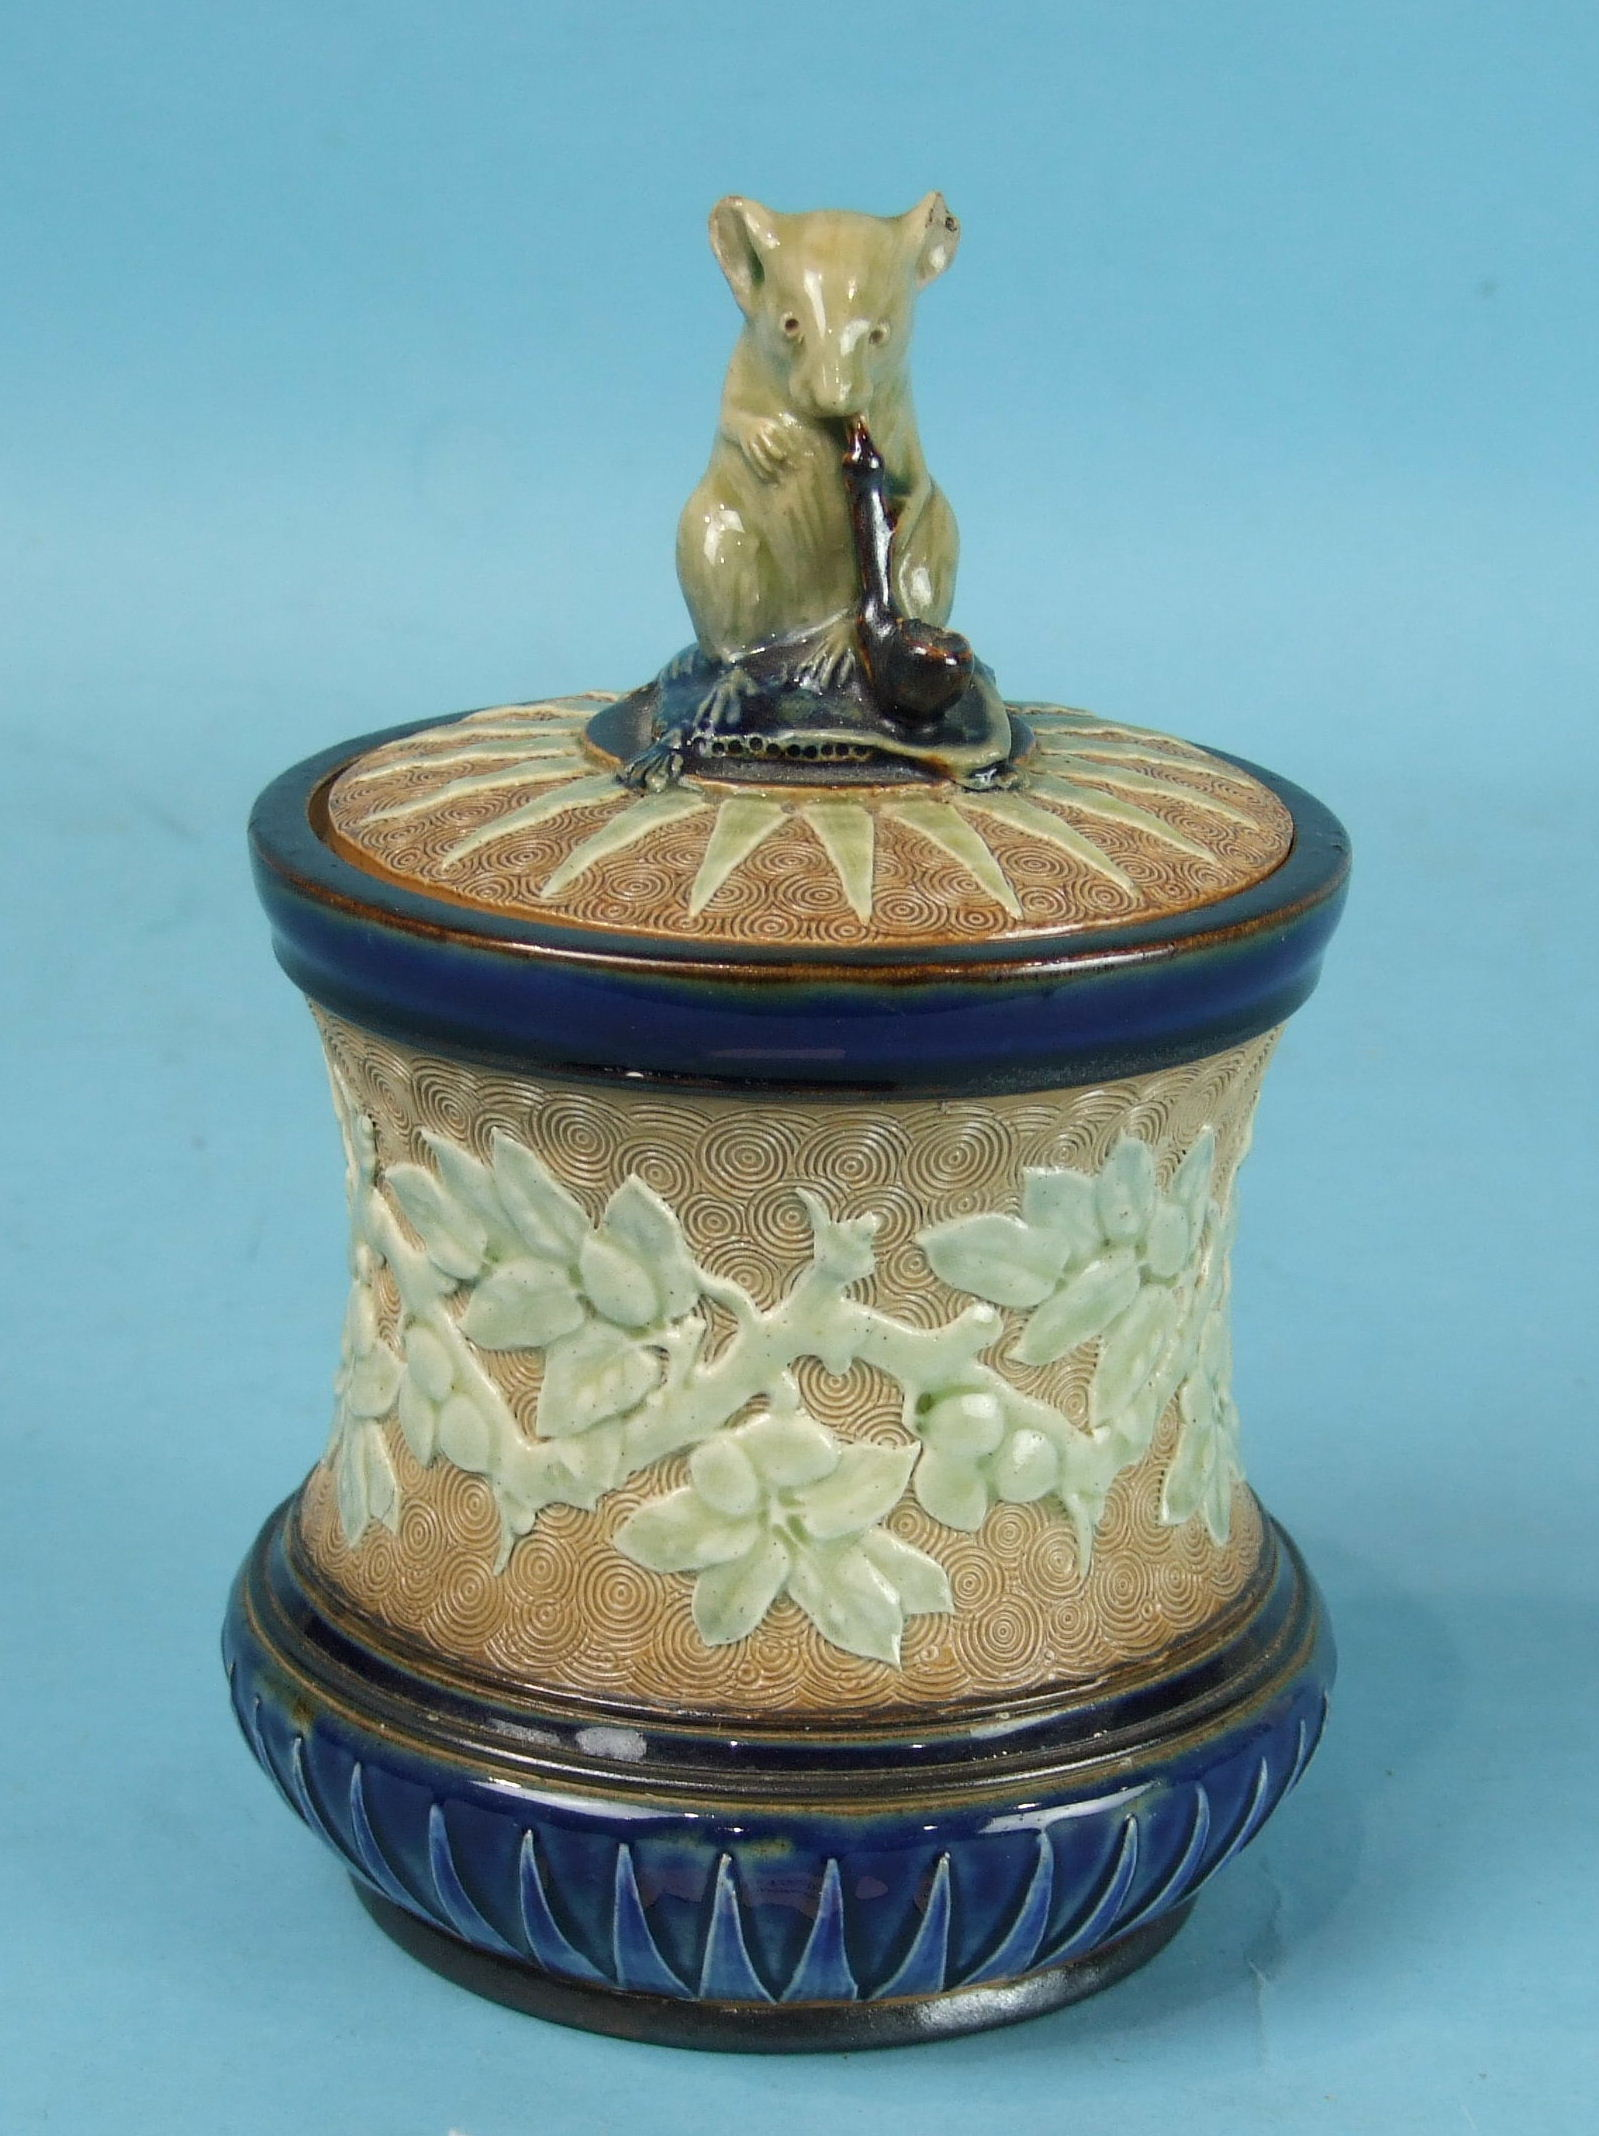 Lot 413 - A Doulton Burslem stoneware tobacco jar and cover of waisted form, decorated overall in blue and